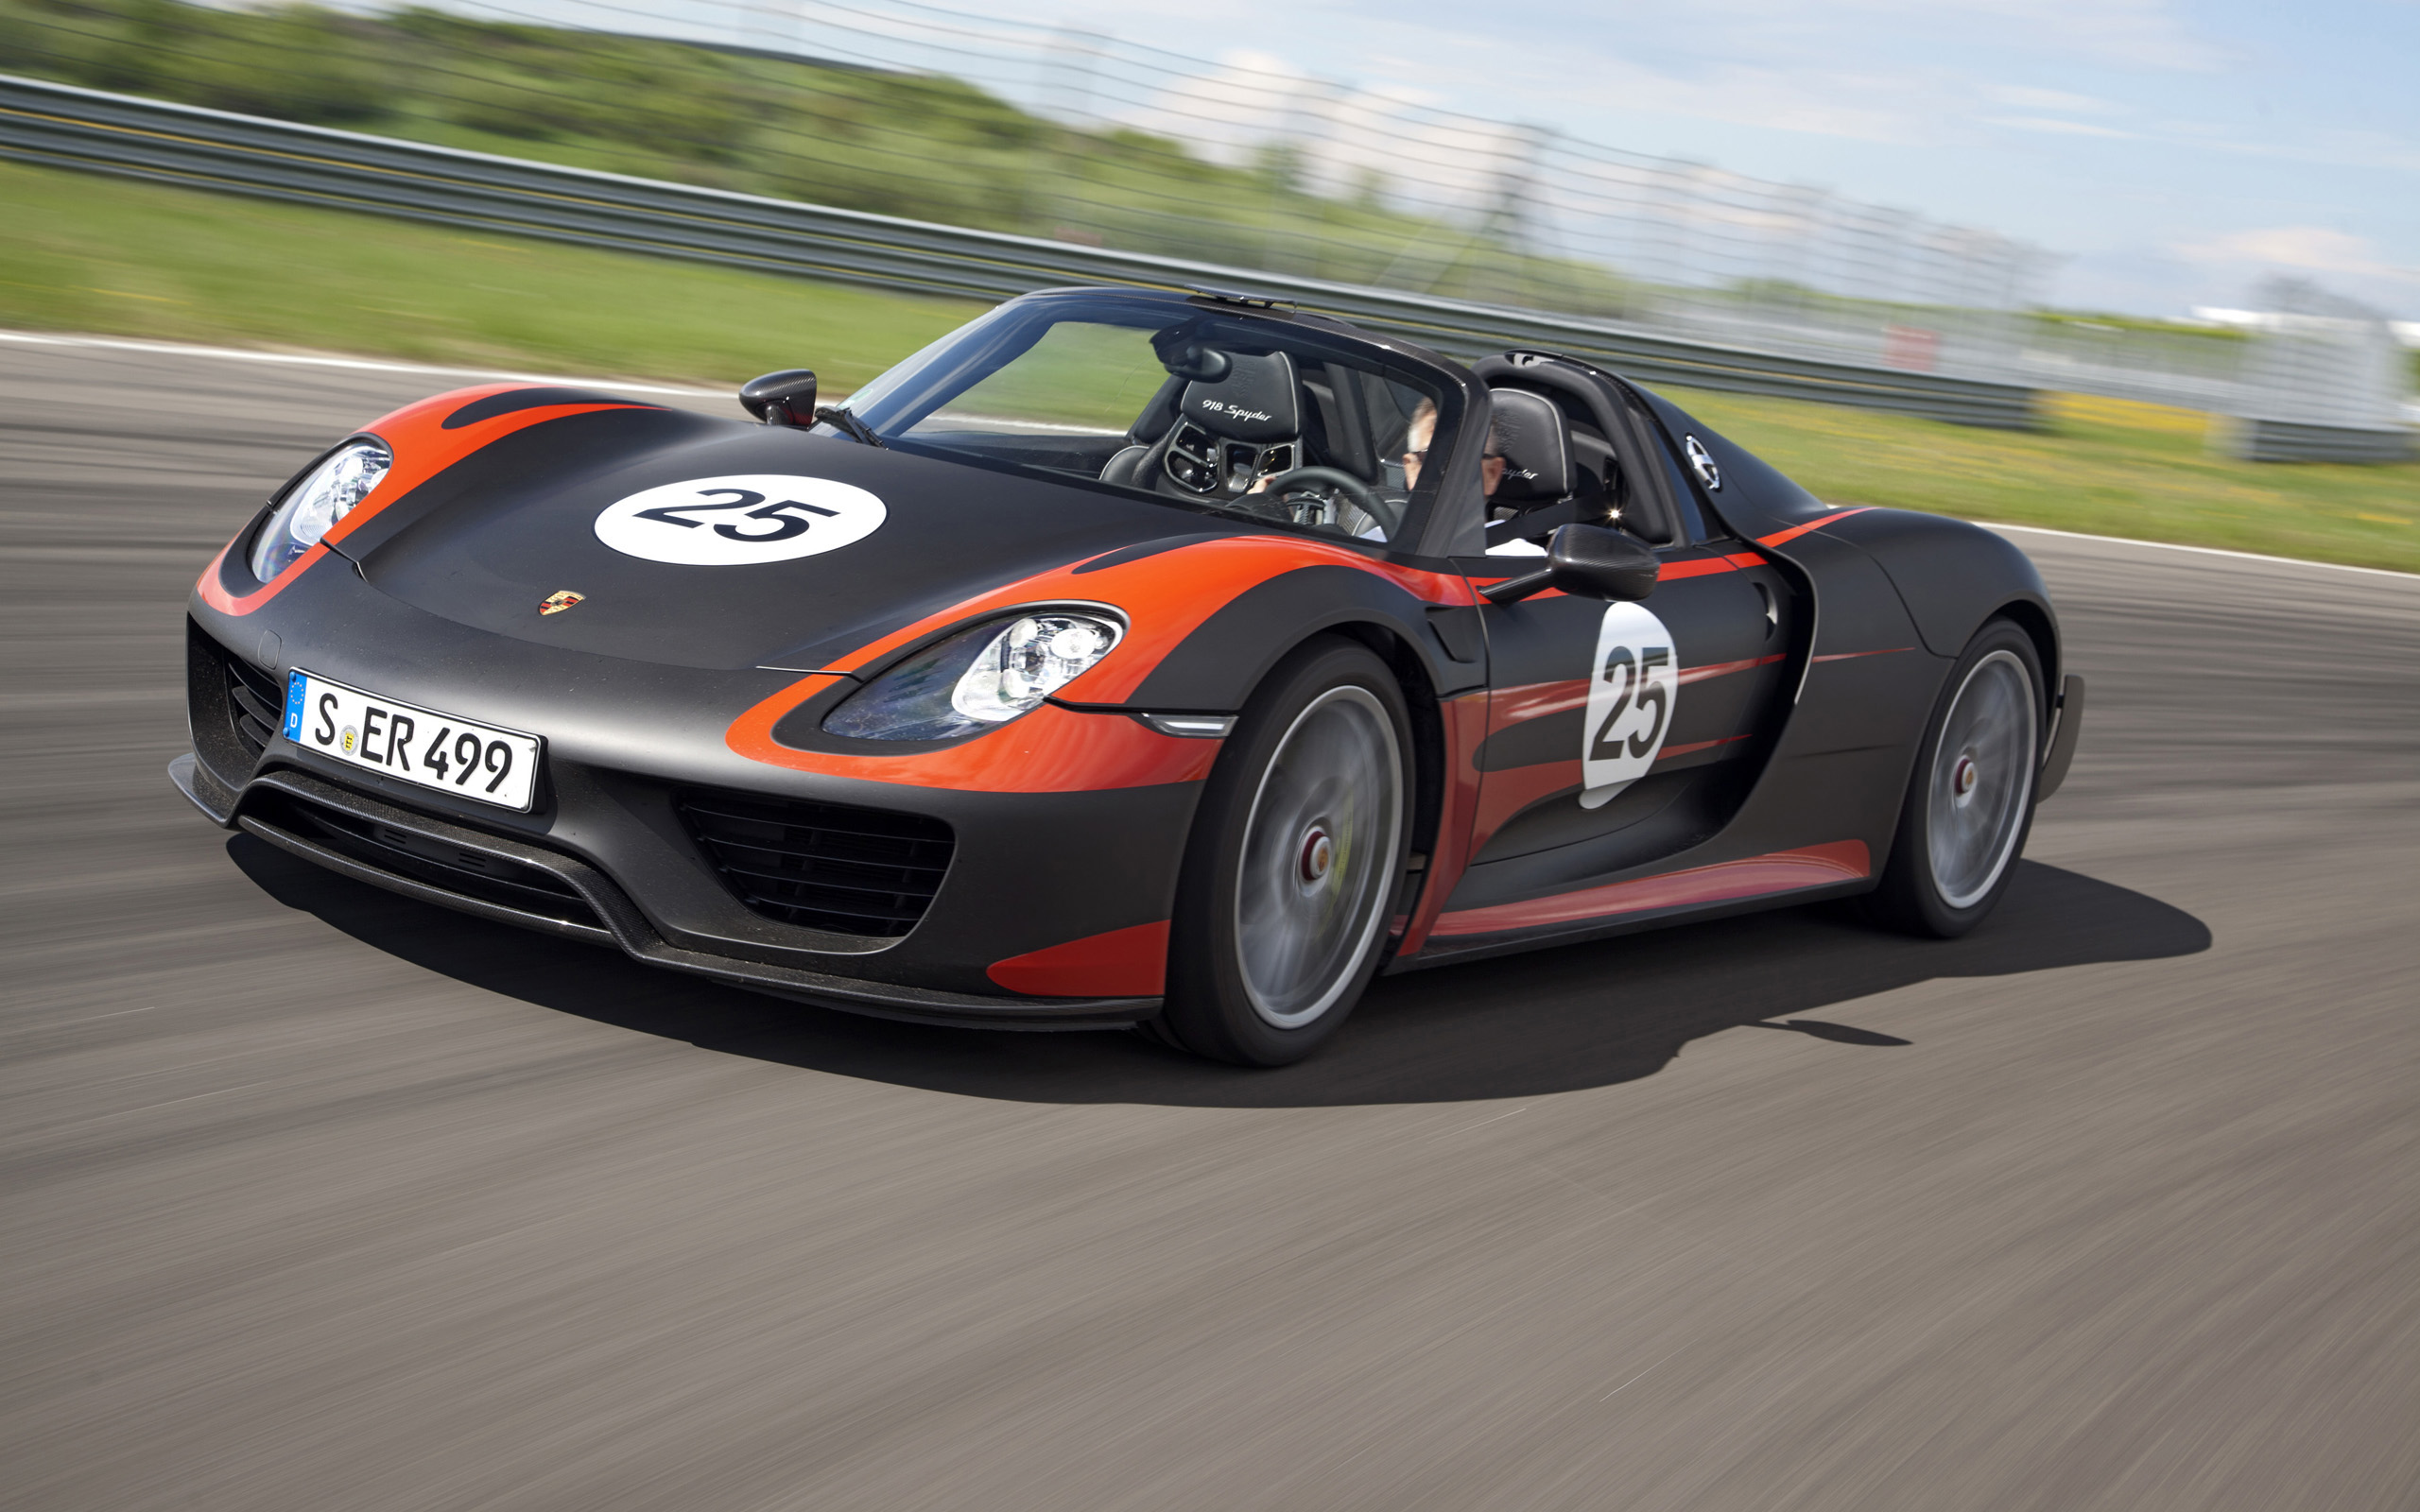 2013 Porsche 918 Spyder Prototype Wallpaper